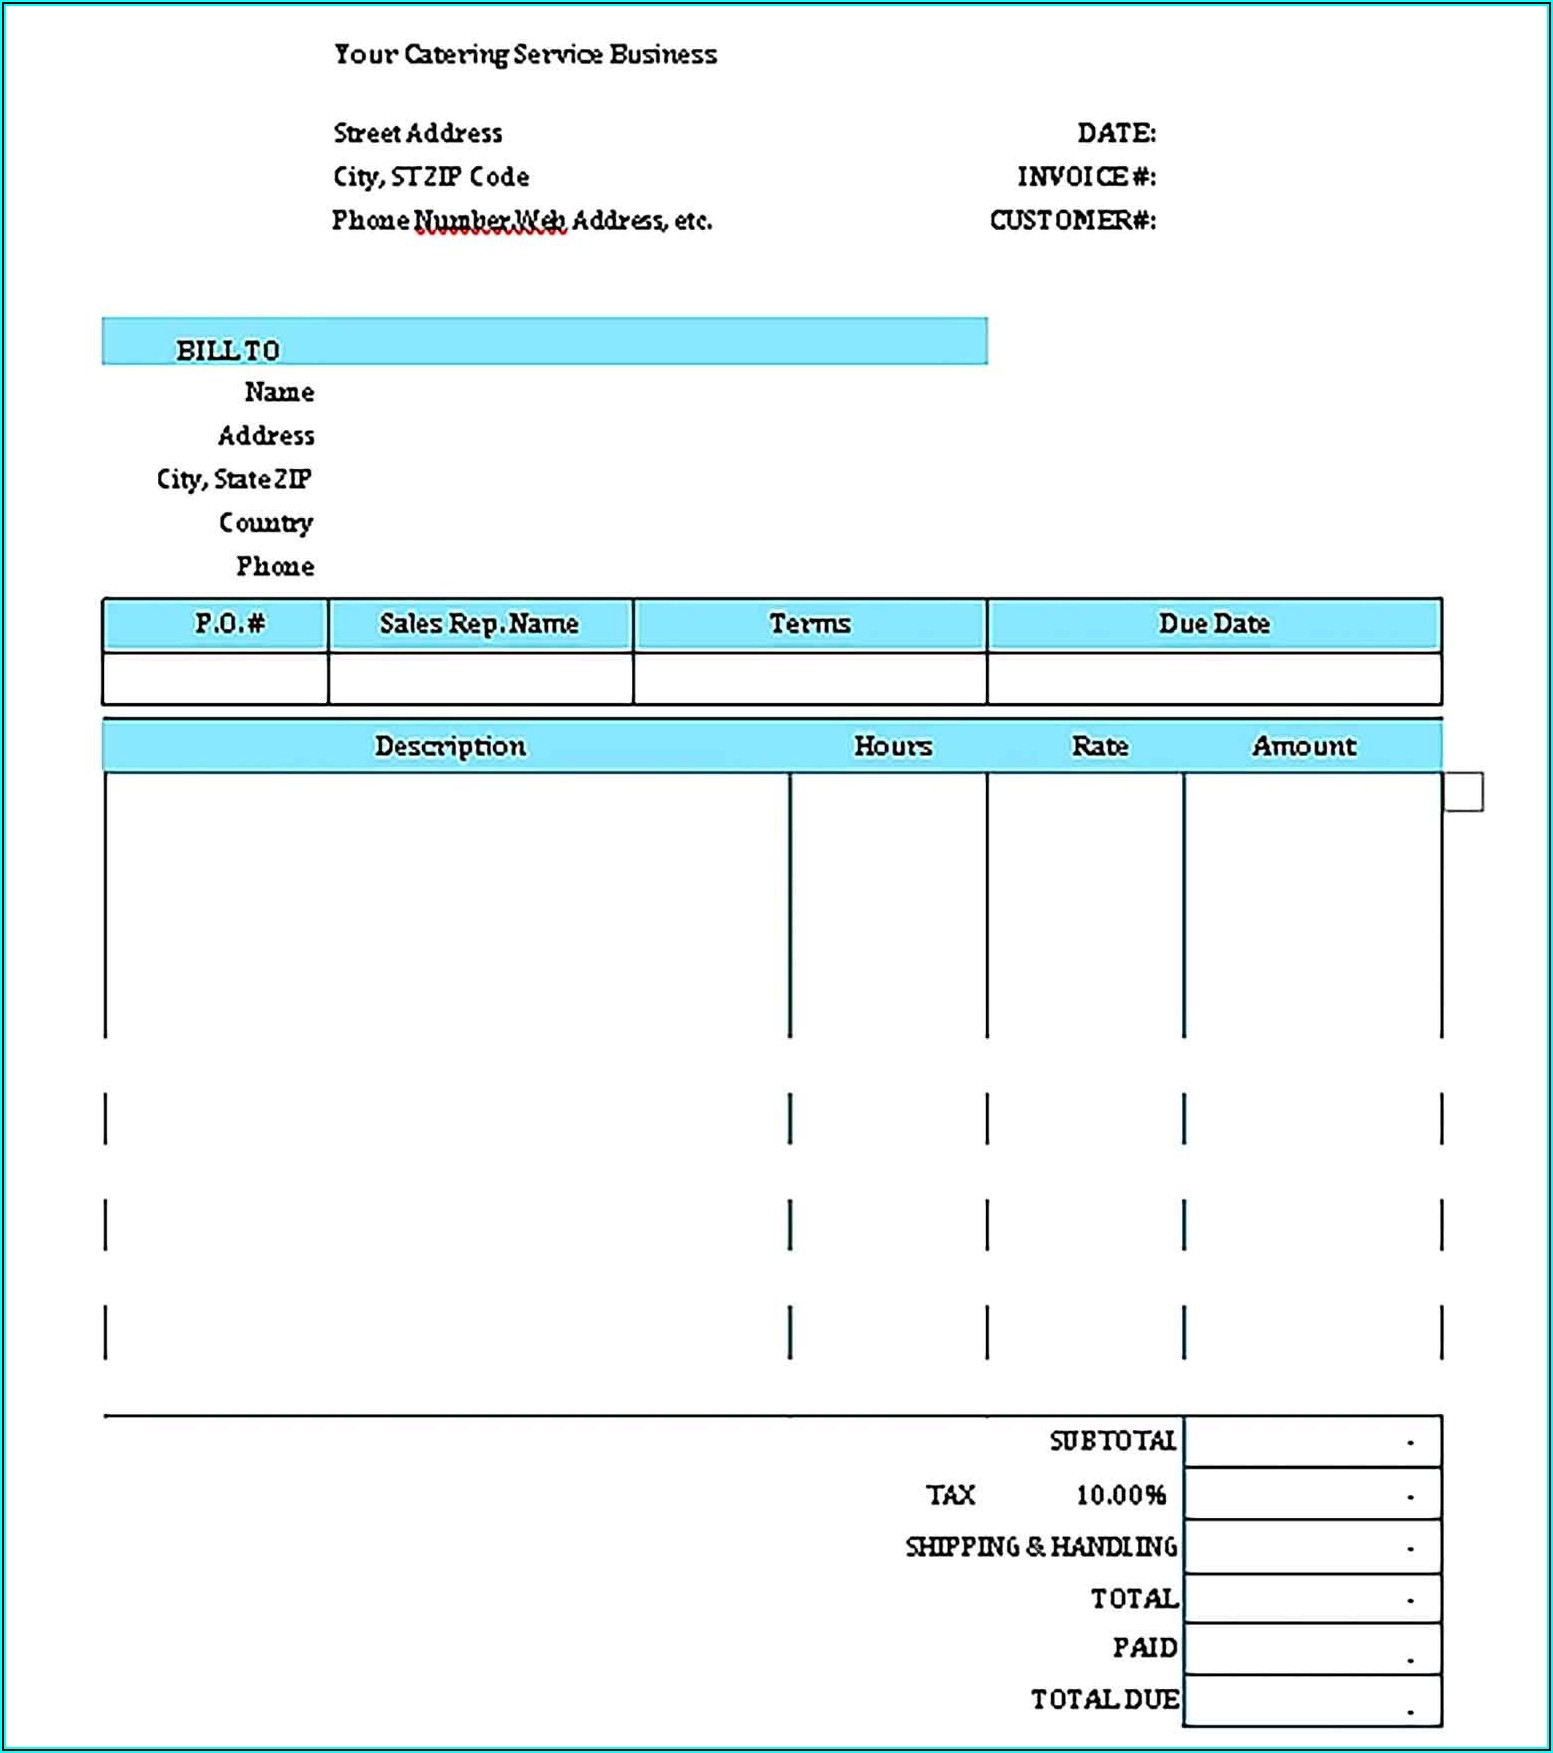 Sample Invoice Catering Services